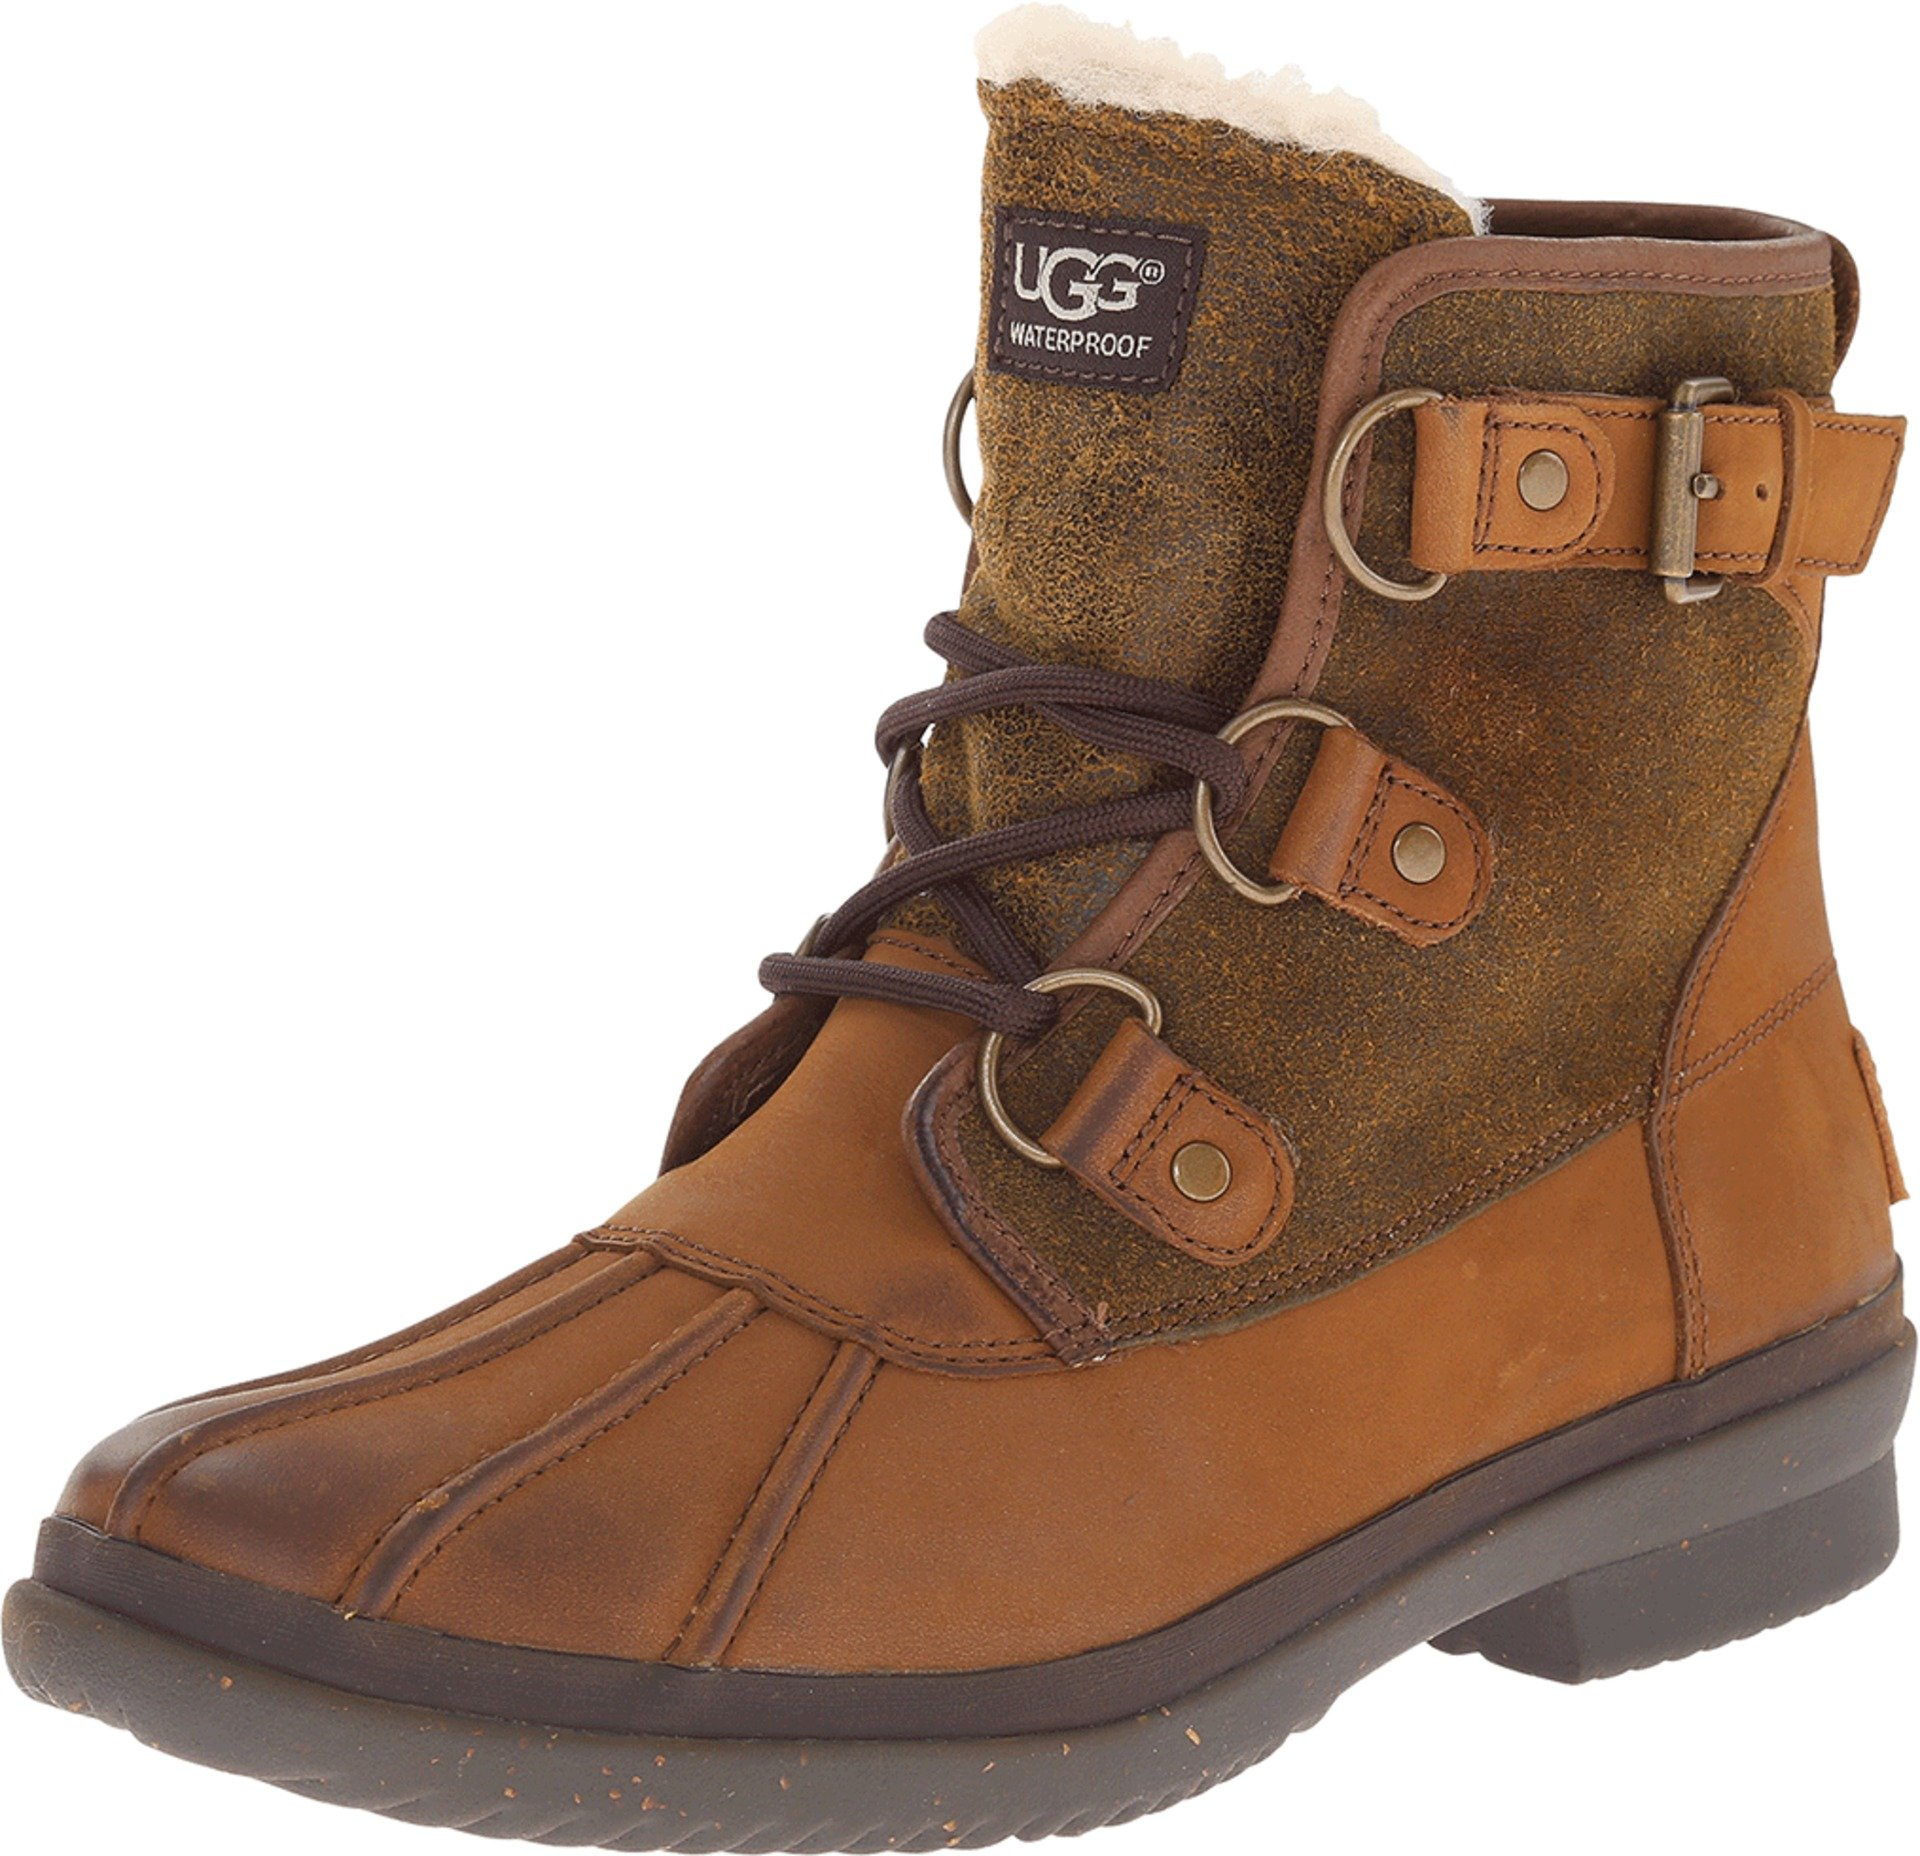 UGG Women's Cecile Winter Boot, Chestnut, 8 B US